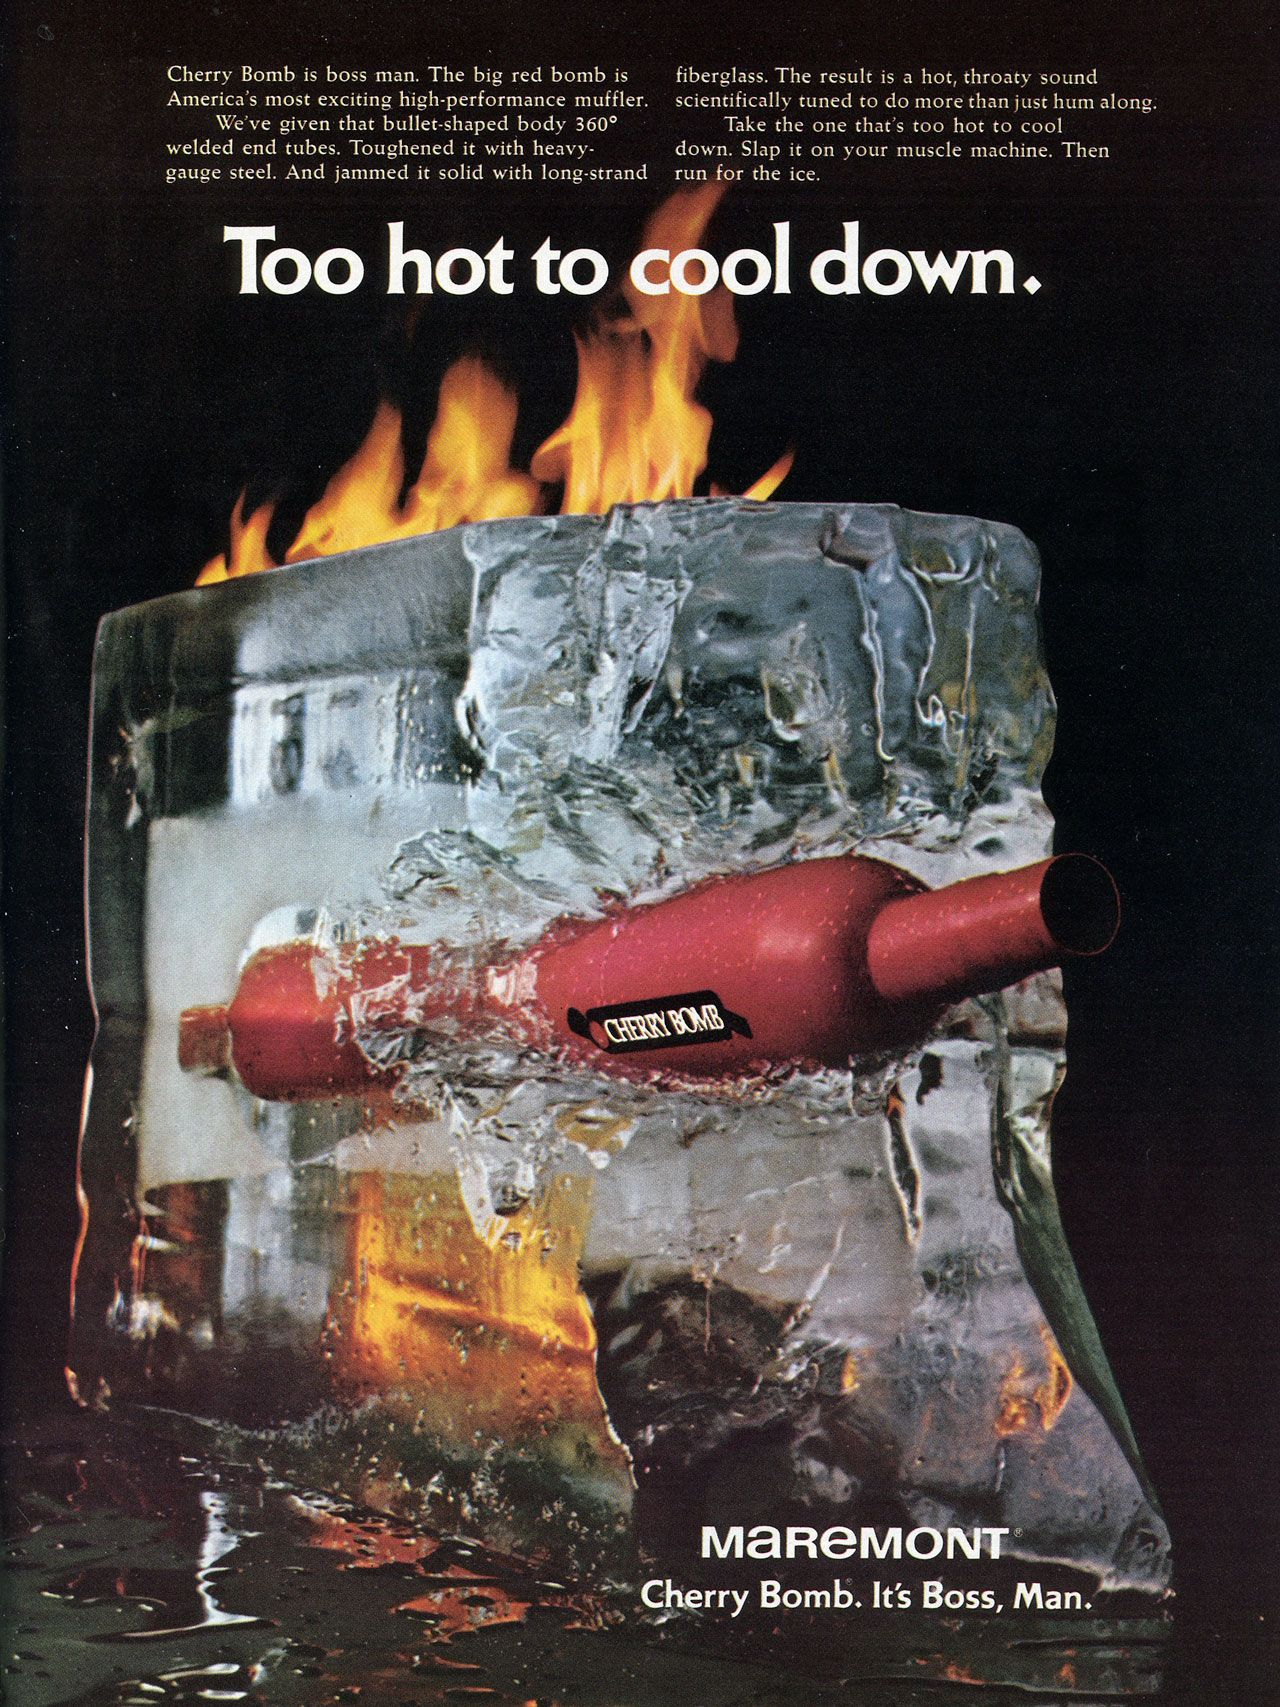 Too hot to cool down. Maremont Cherry Bomb. It's boss, man. Cherry Bomb is boss man. The big red bomb is America's most exciting high-performance muffler. We've given that bullet-shaped body 360° welded end tubes. Toughened it with heavy-gauge steel. And jammed it solid with long-strand fiberglass. The result is a hot, throaty sound scientifically tuned to do more than just hum along. Take the one that's too hot to cool down. Slap it on your muscle machine. Then run for the ice.